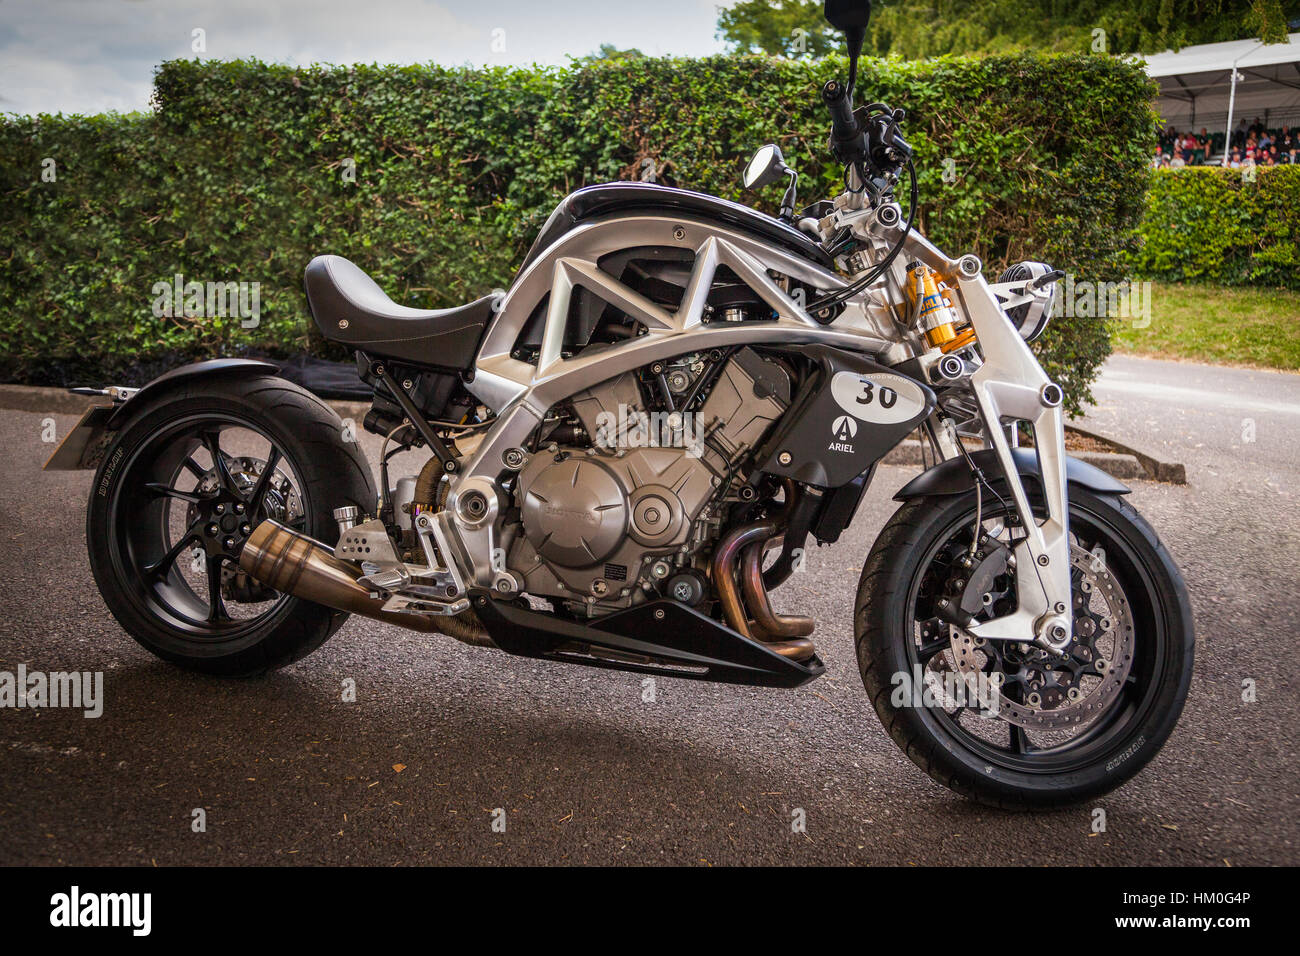 2014 Ariel Motorbike At Goodwood Festival Of Speed 2014   Stock Image